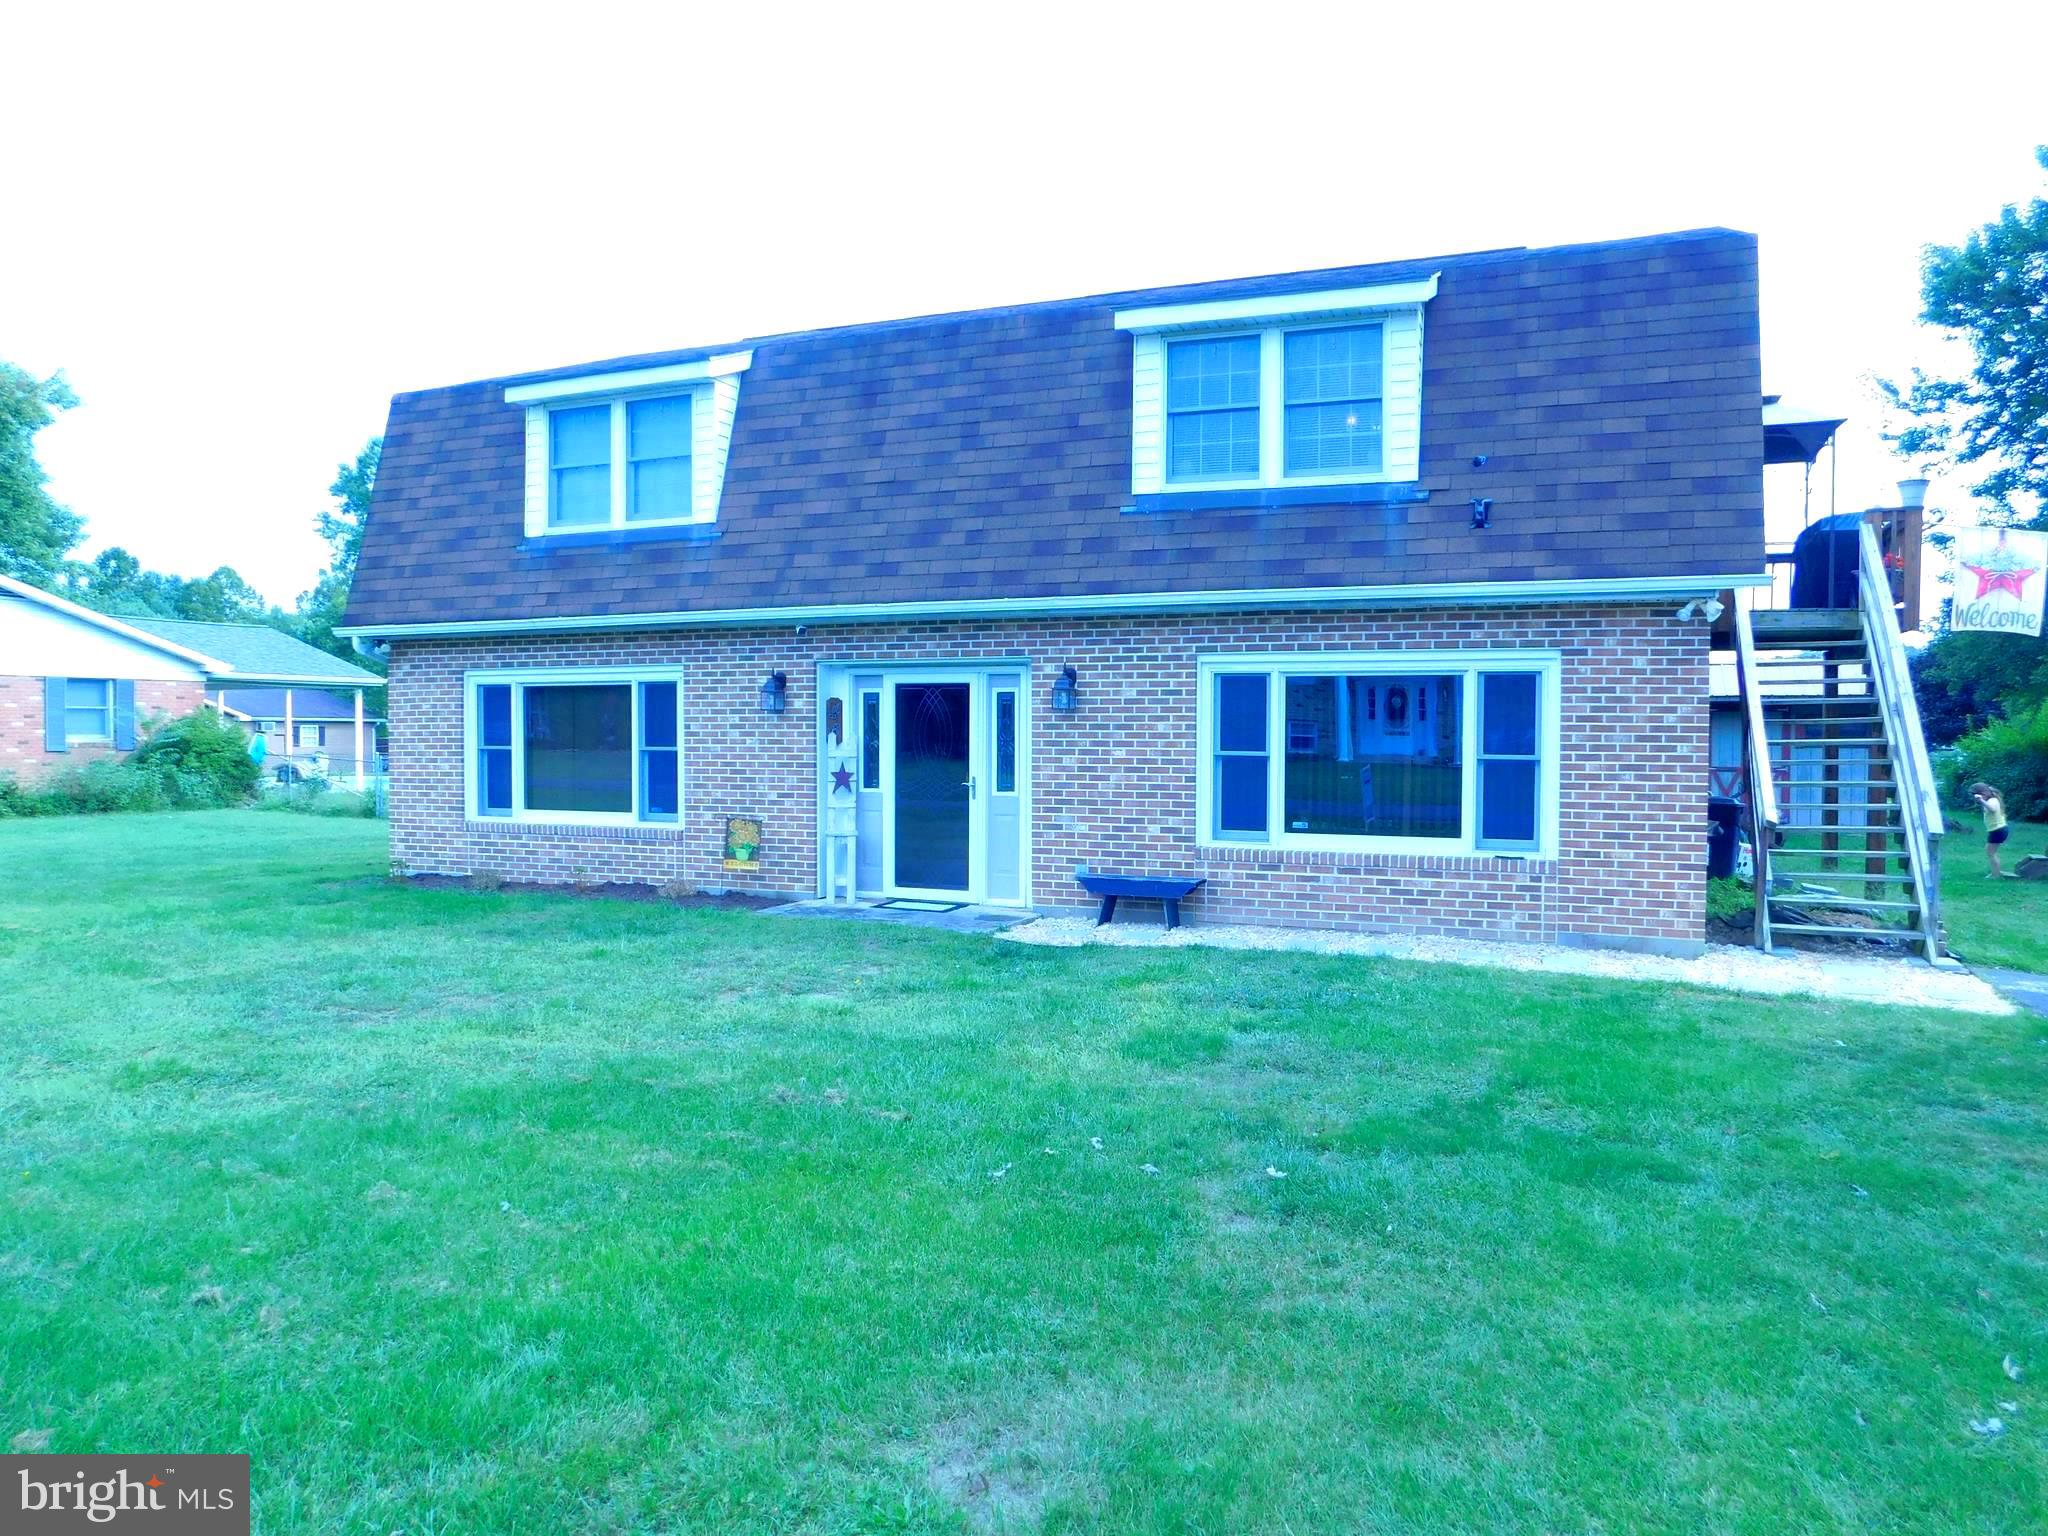 46 SILVER MAPLE STREET, FORT ASHBY, WV 26719